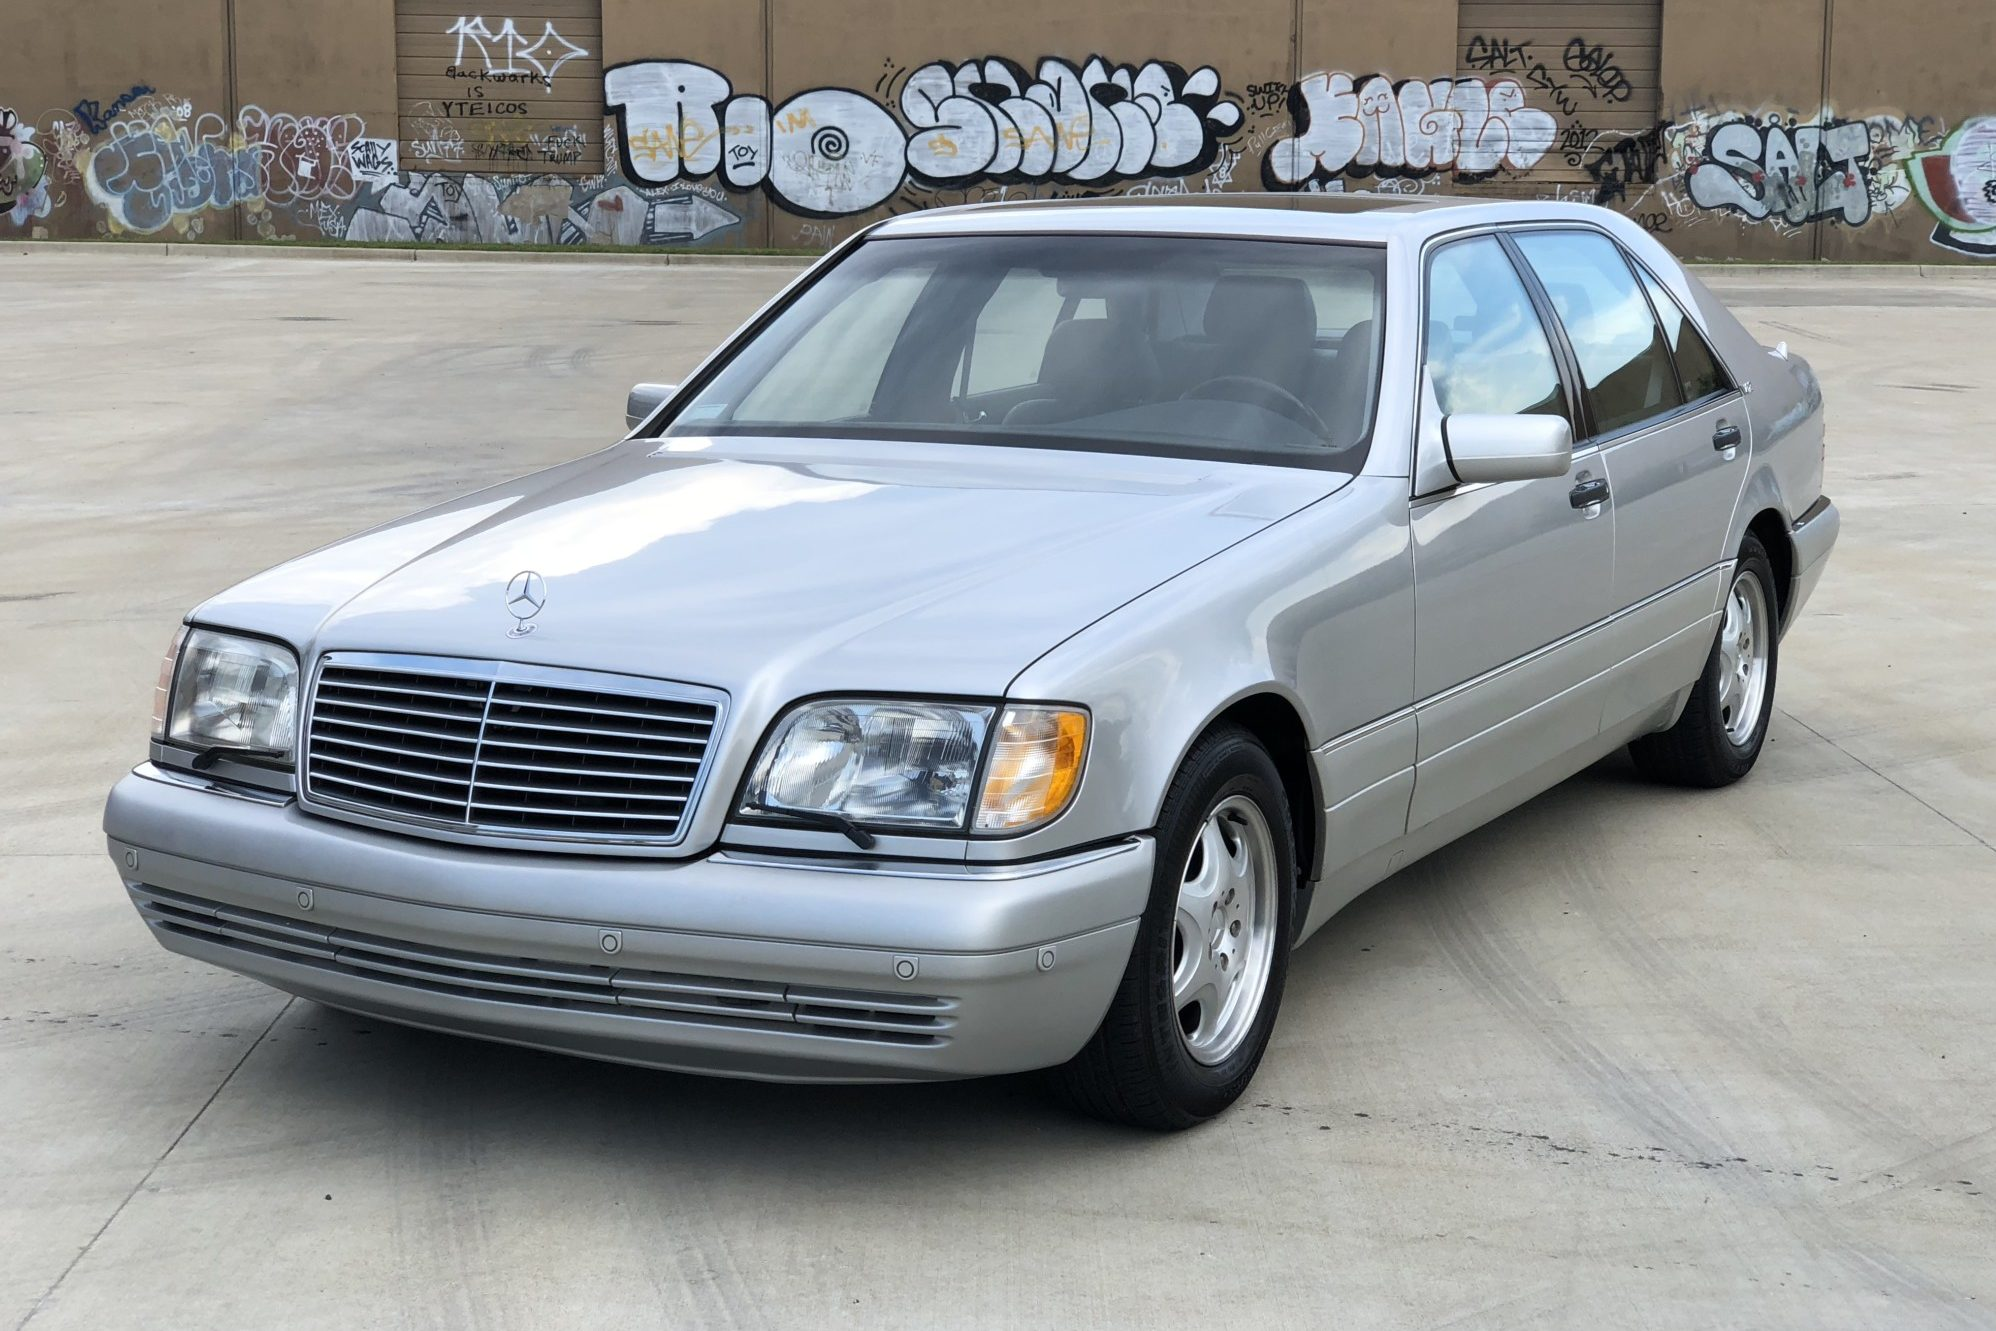 hight resolution of 19k mile 1997 mercedes benz s600 for sale on bat auctions closed on june 28 2019 lot 20 405 bring a trailer